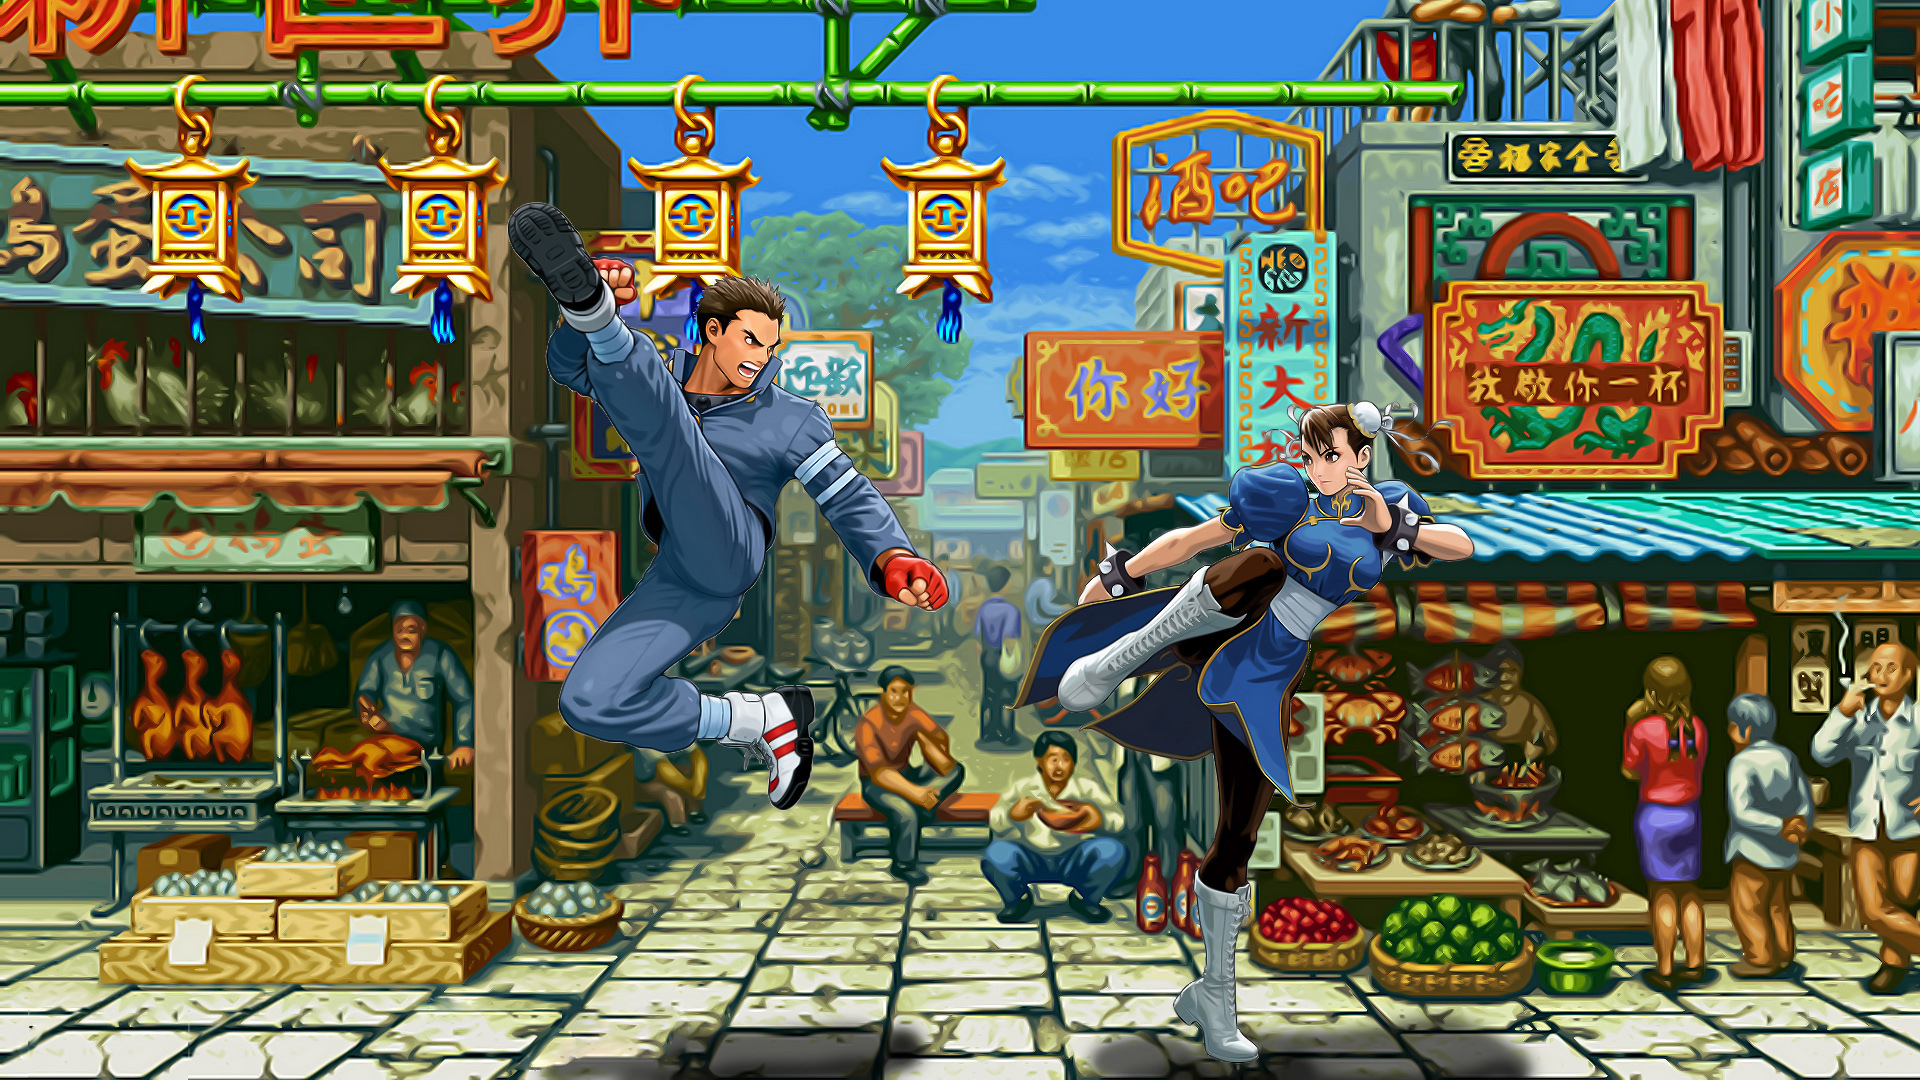 Animated Lion Wallpaper Hd 6 Street Fighter Ii The World Warrior Hd Wallpapers